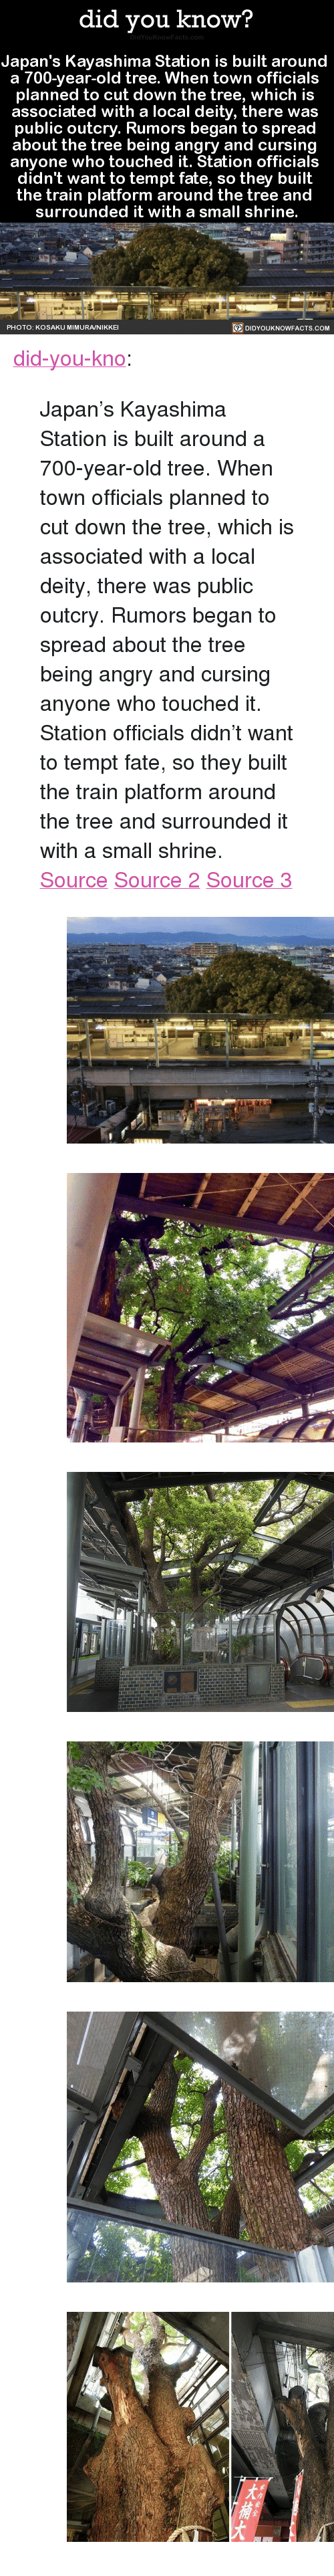 """Shrine: did you know?  Japan's Kayashima Station is built around  a 700-vear-old tree. When town officials  planned to cut down the tree, which is  associated with a local deity, there was  public outcry. Rumors began to spread  about the tree being angry and cursin  anyone who touched it. Station officials  didn't want to tempt fate, so they built  the train platform around the tree and  surrounded it with a small shrine.  PHOTO: KOSAKU MIMURA/NIKKE  DIDYOUKNOWFACTS.CoM <p><a href=""""http://didyouknowblog.com/post/158719101556/japans-kayashima-station-is-built-around-a"""" class=""""tumblr_blog"""">did-you-kno</a>:</p> <blockquote> <p>Japan's Kayashima Station is built around  a 700-year-old tree. When town officials  planned to cut down the tree, which is  associated with a local deity, there was  public outcry. Rumors began to spread  about the tree being angry and cursing  anyone who touched it. Station officials  didn't want to tempt fate, so they built  the train platform around the tree and  surrounded it with a small shrine.  <a href=""""http://www.spoon-tamago.com/2017/01/21/kayashima-the-japanese-train-station-built-around-a-700-year-old-tree/"""">Source</a> <a href=""""http://mymodernmet.com/kayashima-station-camphor-tree/"""">Source 2</a> <a href=""""http://www.atlasobscura.com/places/kayashima-station"""">Source 3</a></p> <figure class=""""tmblr-full"""" data-orig-height=""""339"""" data-orig-width=""""540""""><img src=""""https://78.media.tumblr.com/6db5d29da101ddfaf26022f04de5b681/tumblr_inline_on74fjj7621uy8wg3_540.jpg"""" data-orig-height=""""339"""" data-orig-width=""""540""""/></figure><figure class=""""tmblr-full"""" data-orig-height=""""403"""" data-orig-width=""""540""""><img src=""""https://78.media.tumblr.com/add8874ad450eeefd38d59773a5c0daf/tumblr_inline_on74fjyMYv1uy8wg3_540.jpg"""" data-orig-height=""""403"""" data-orig-width=""""540""""/></figure><figure class=""""tmblr-full"""" data-orig-height=""""359"""" data-orig-width=""""540""""><img src=""""https://78.media.tumblr.com/6884871ae50eed2103c666942ea81536/tumblr_inline_on74fkVp341uy8wg3_540.jpg"""" data-orig-"""